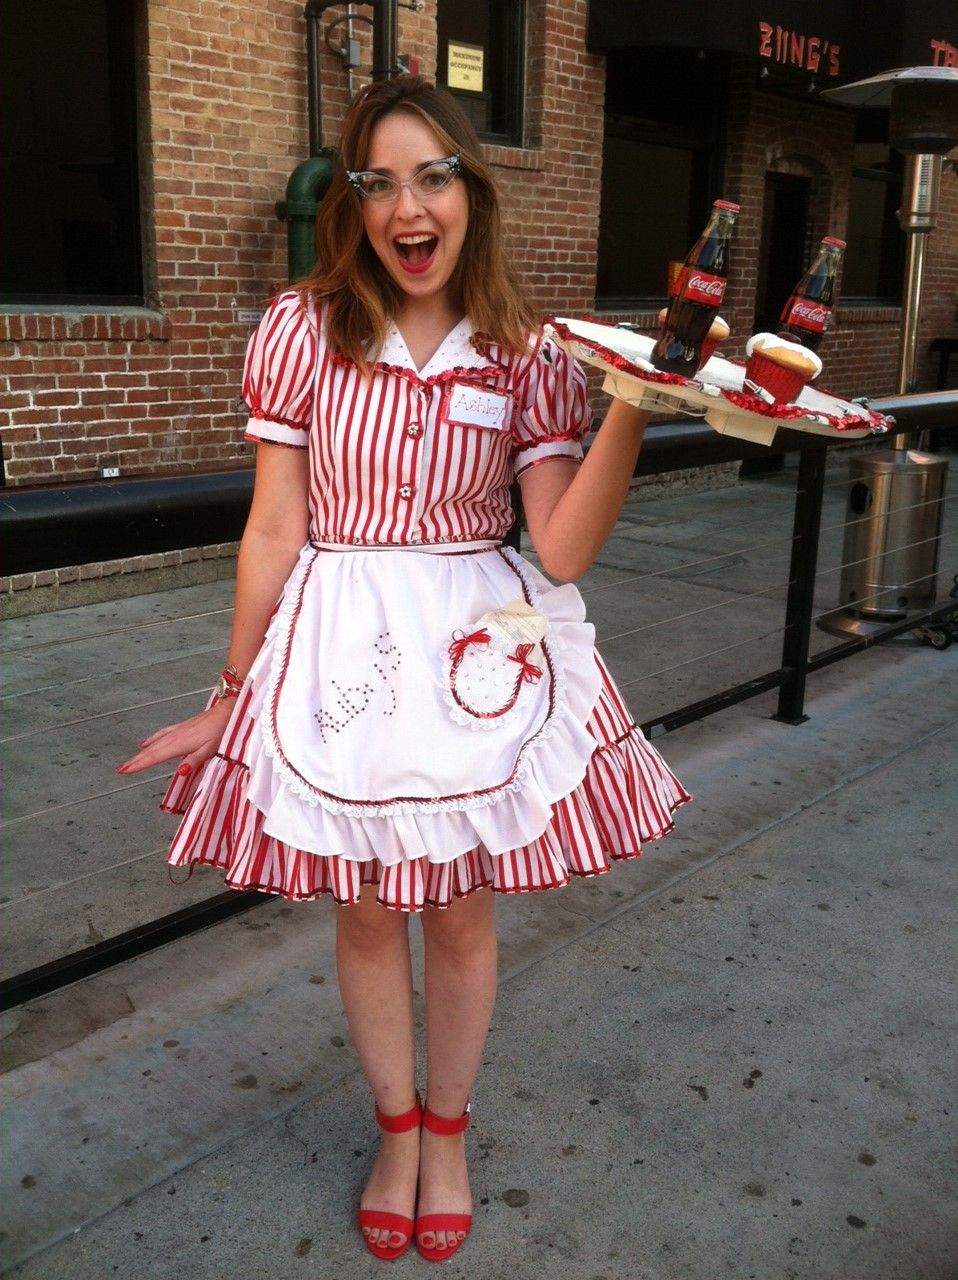 fabulous rubys diner costume at buffalo exchange fullerton